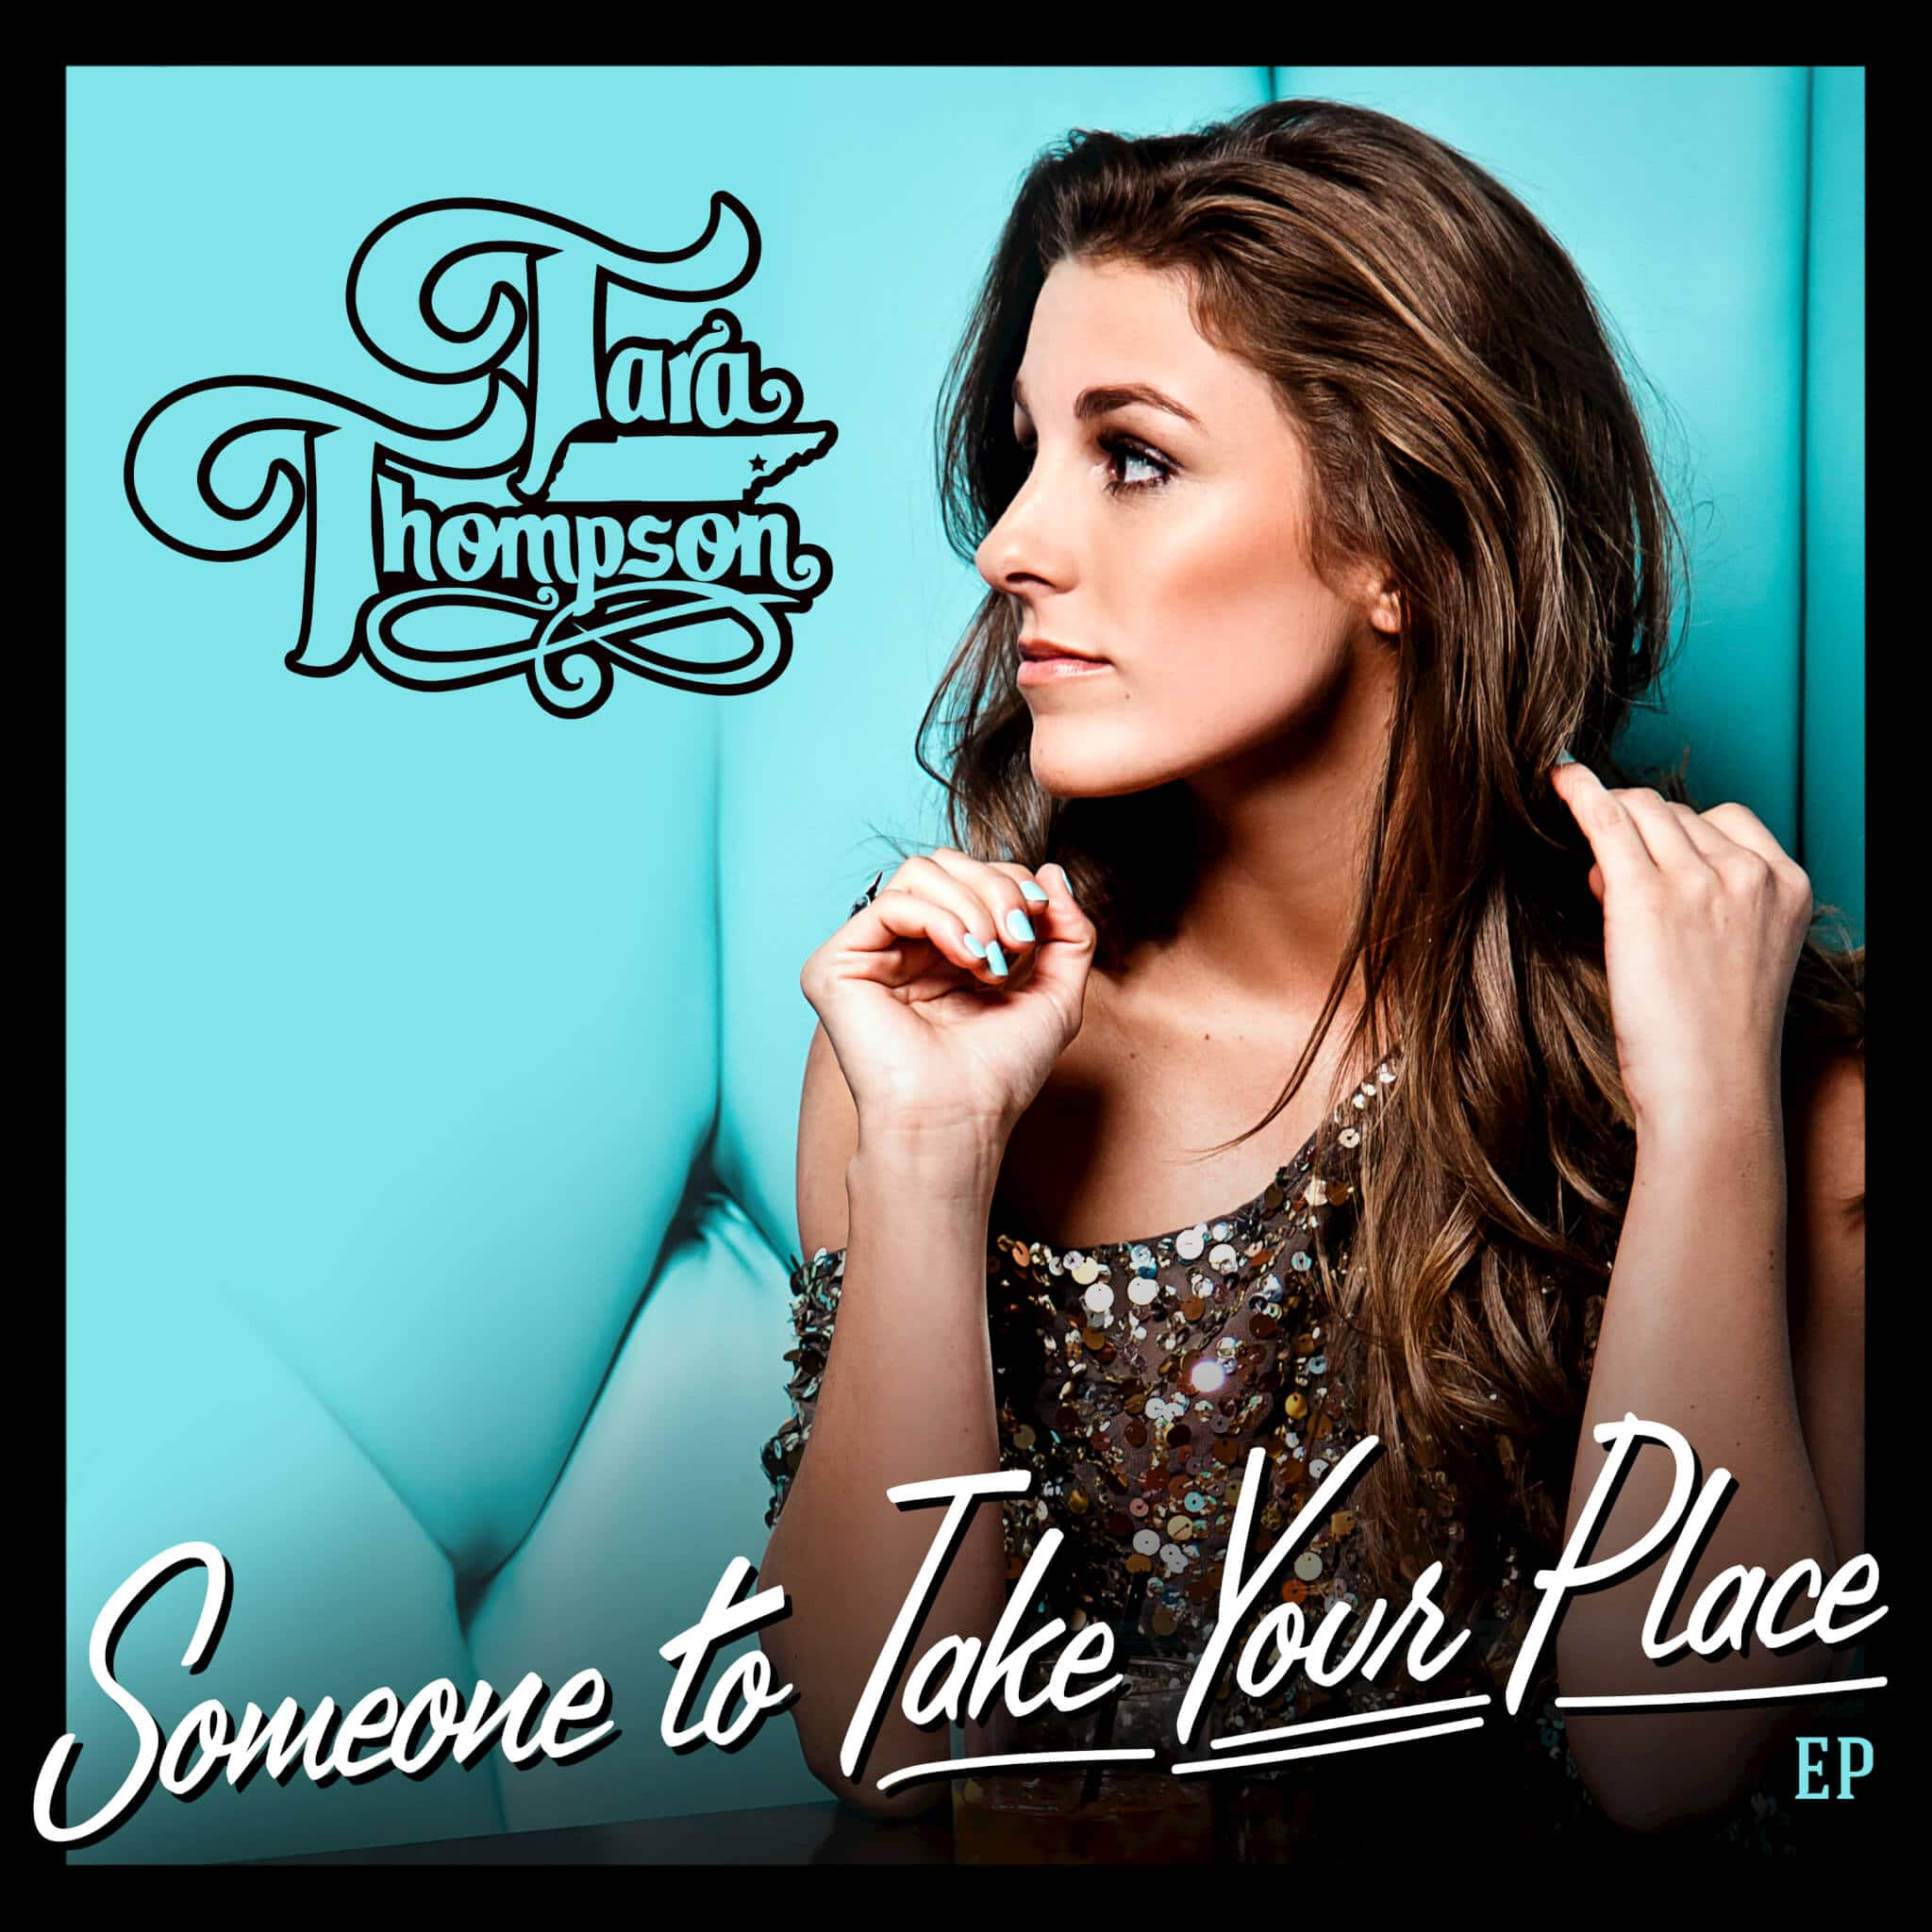 """Tara Thompson's Debut EP, """"Someone to Take Your Place,"""" Leaves You Wanting More"""